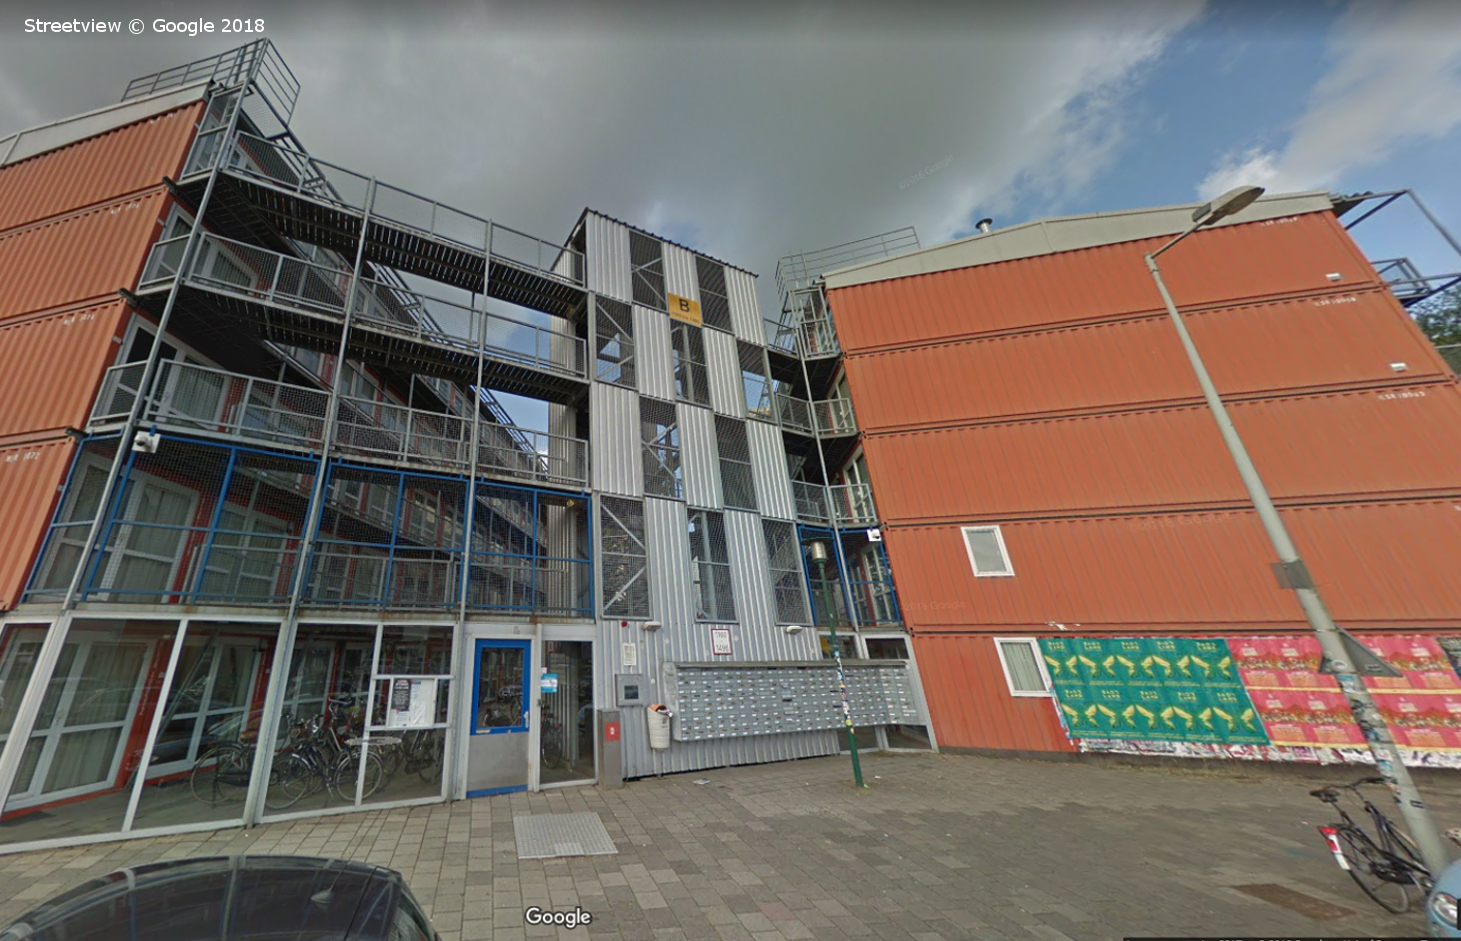 Keetwonen Student Apartments, Amsterdam, Google Streetview